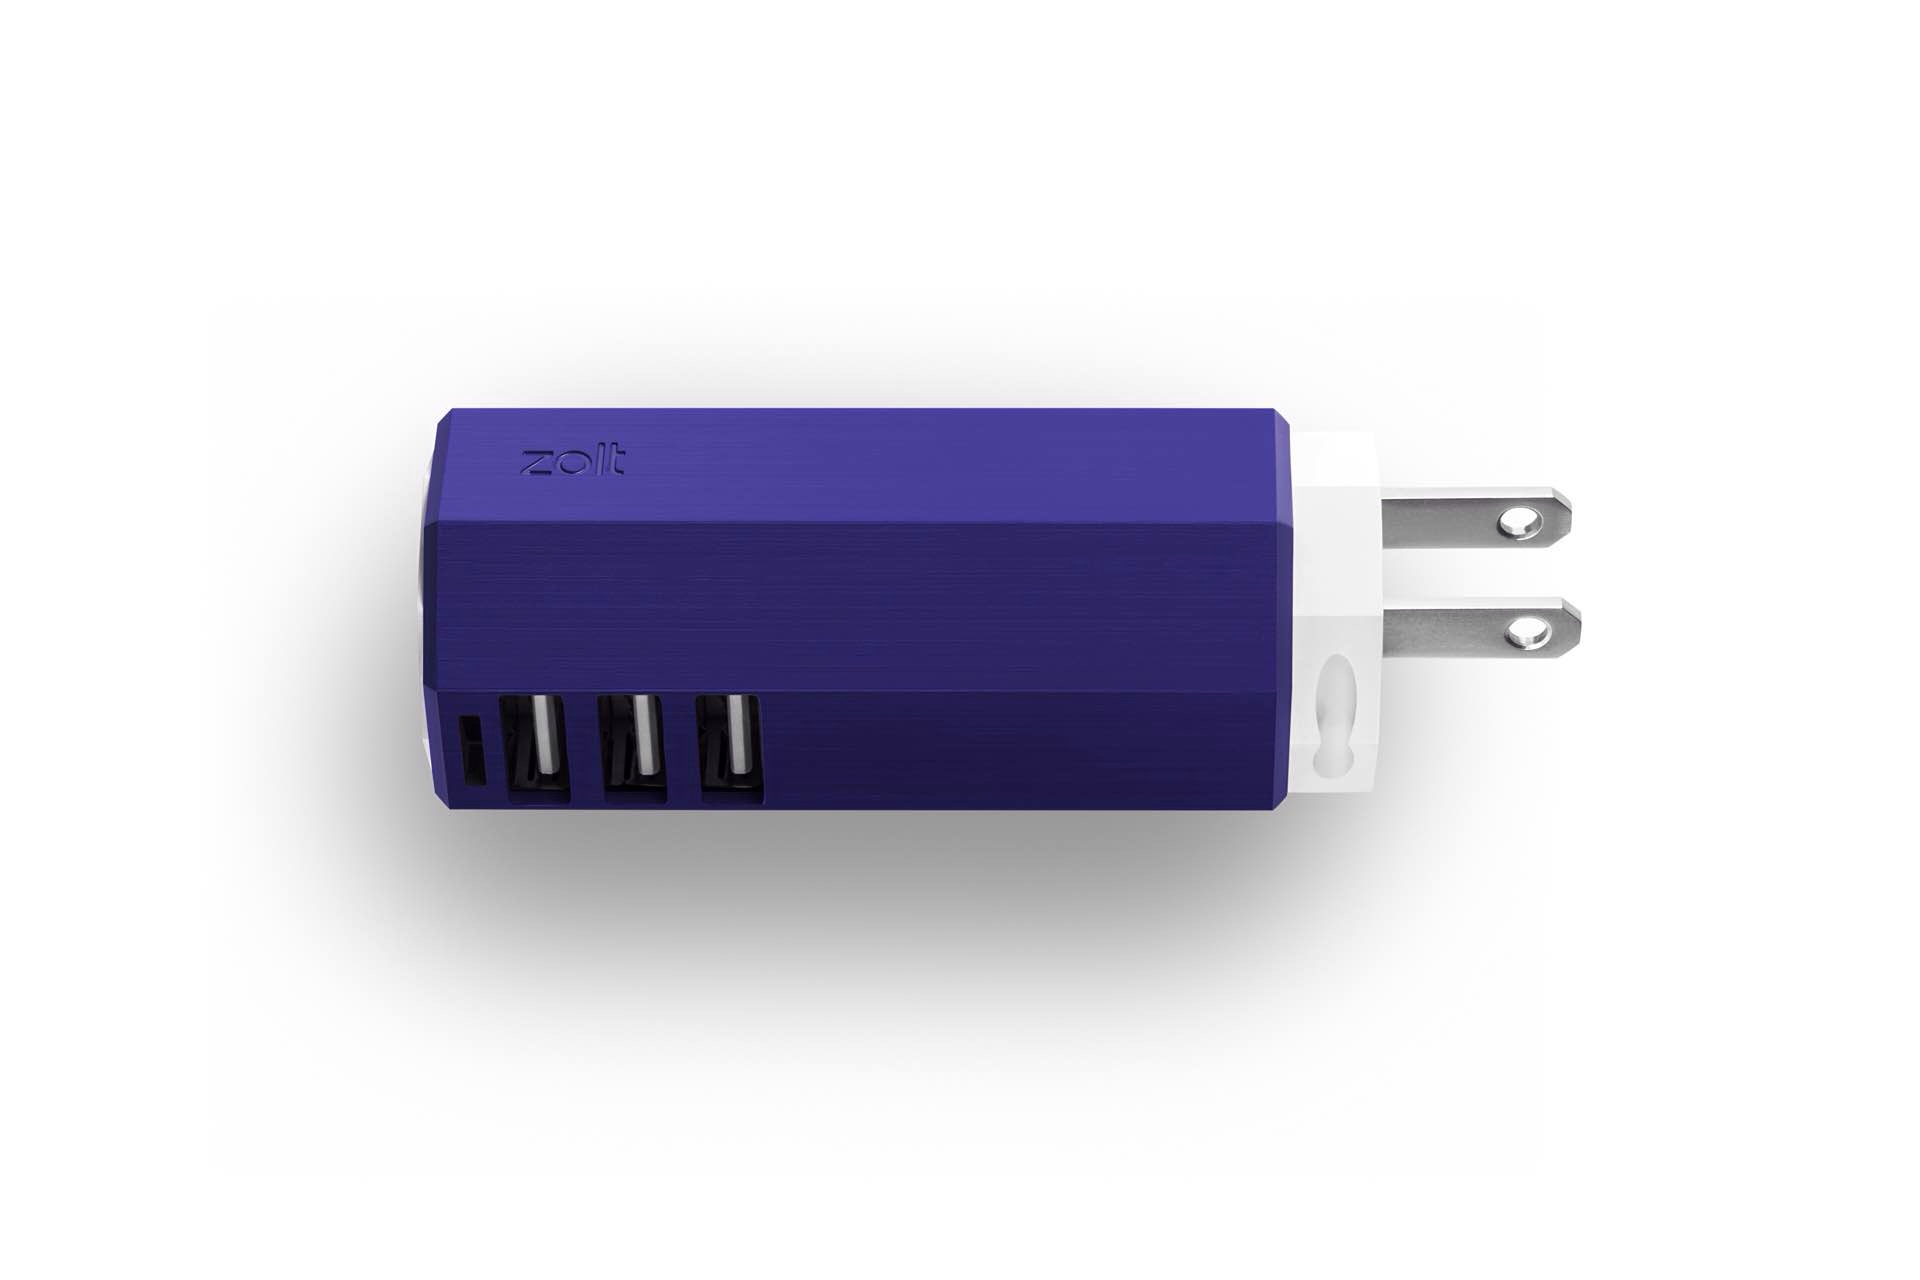 zolt-multi-device-charger